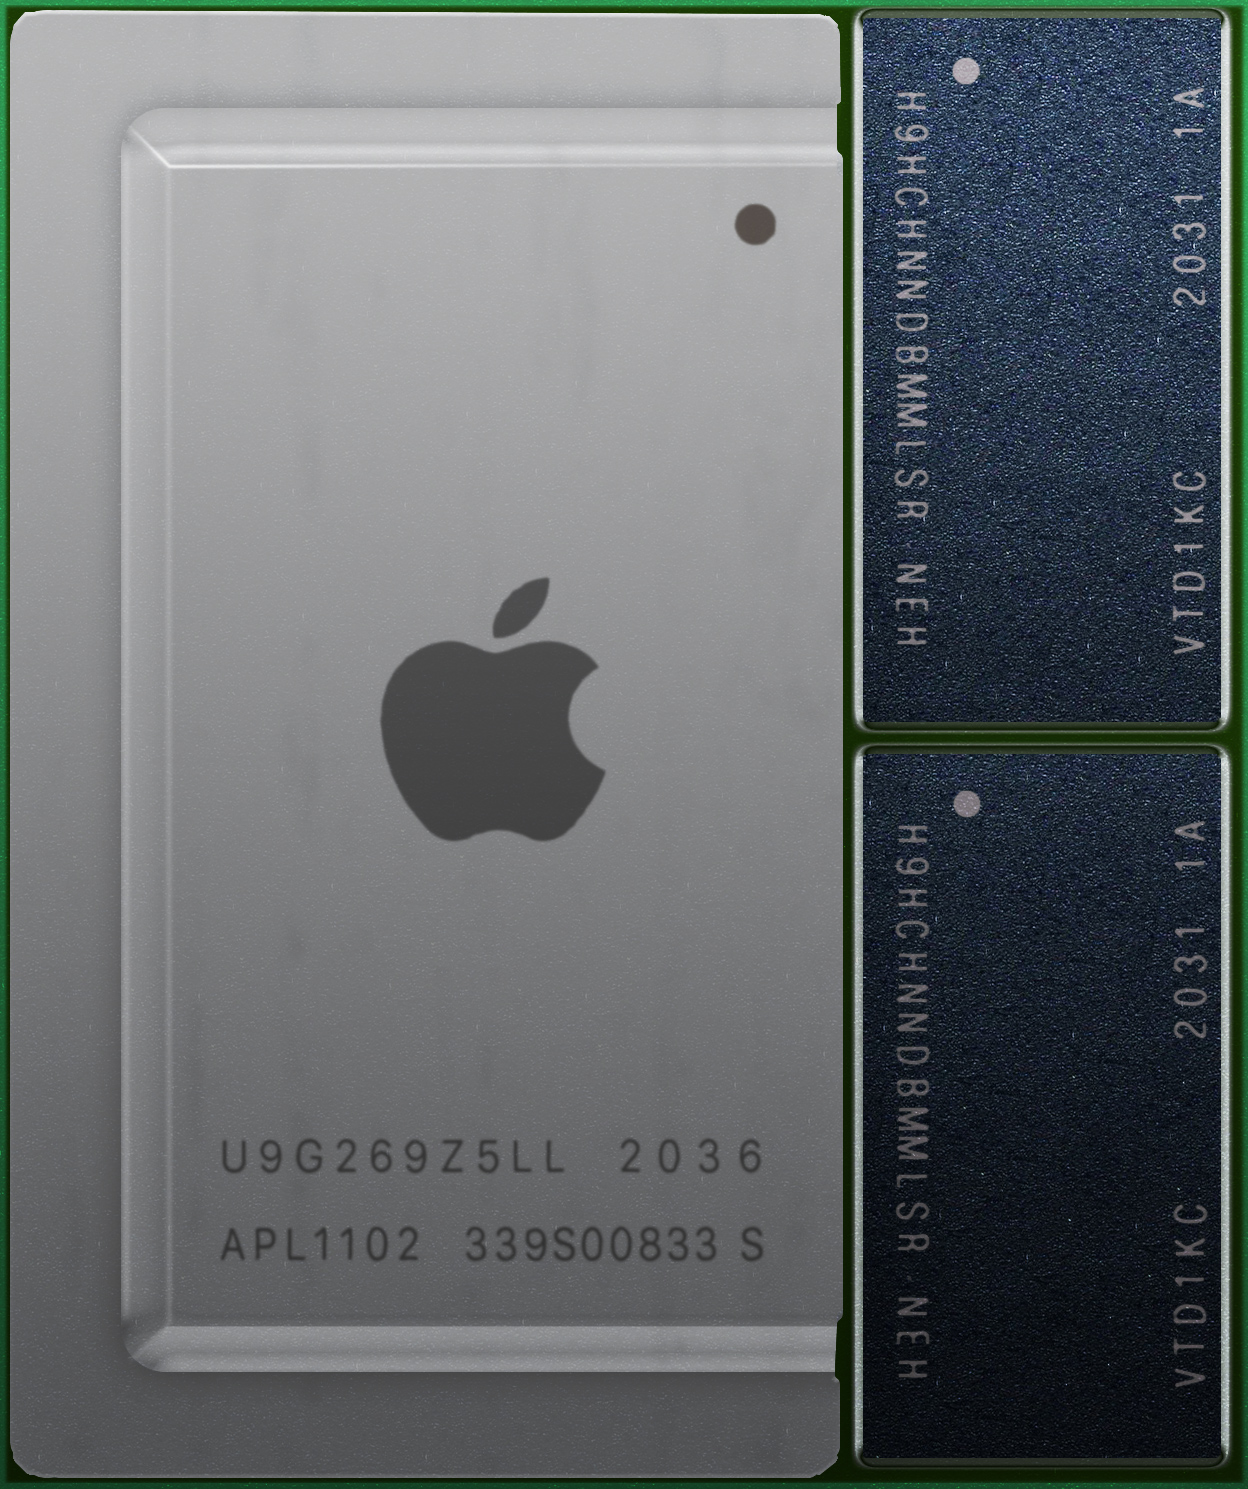 Apple M1 ARM64 Chip